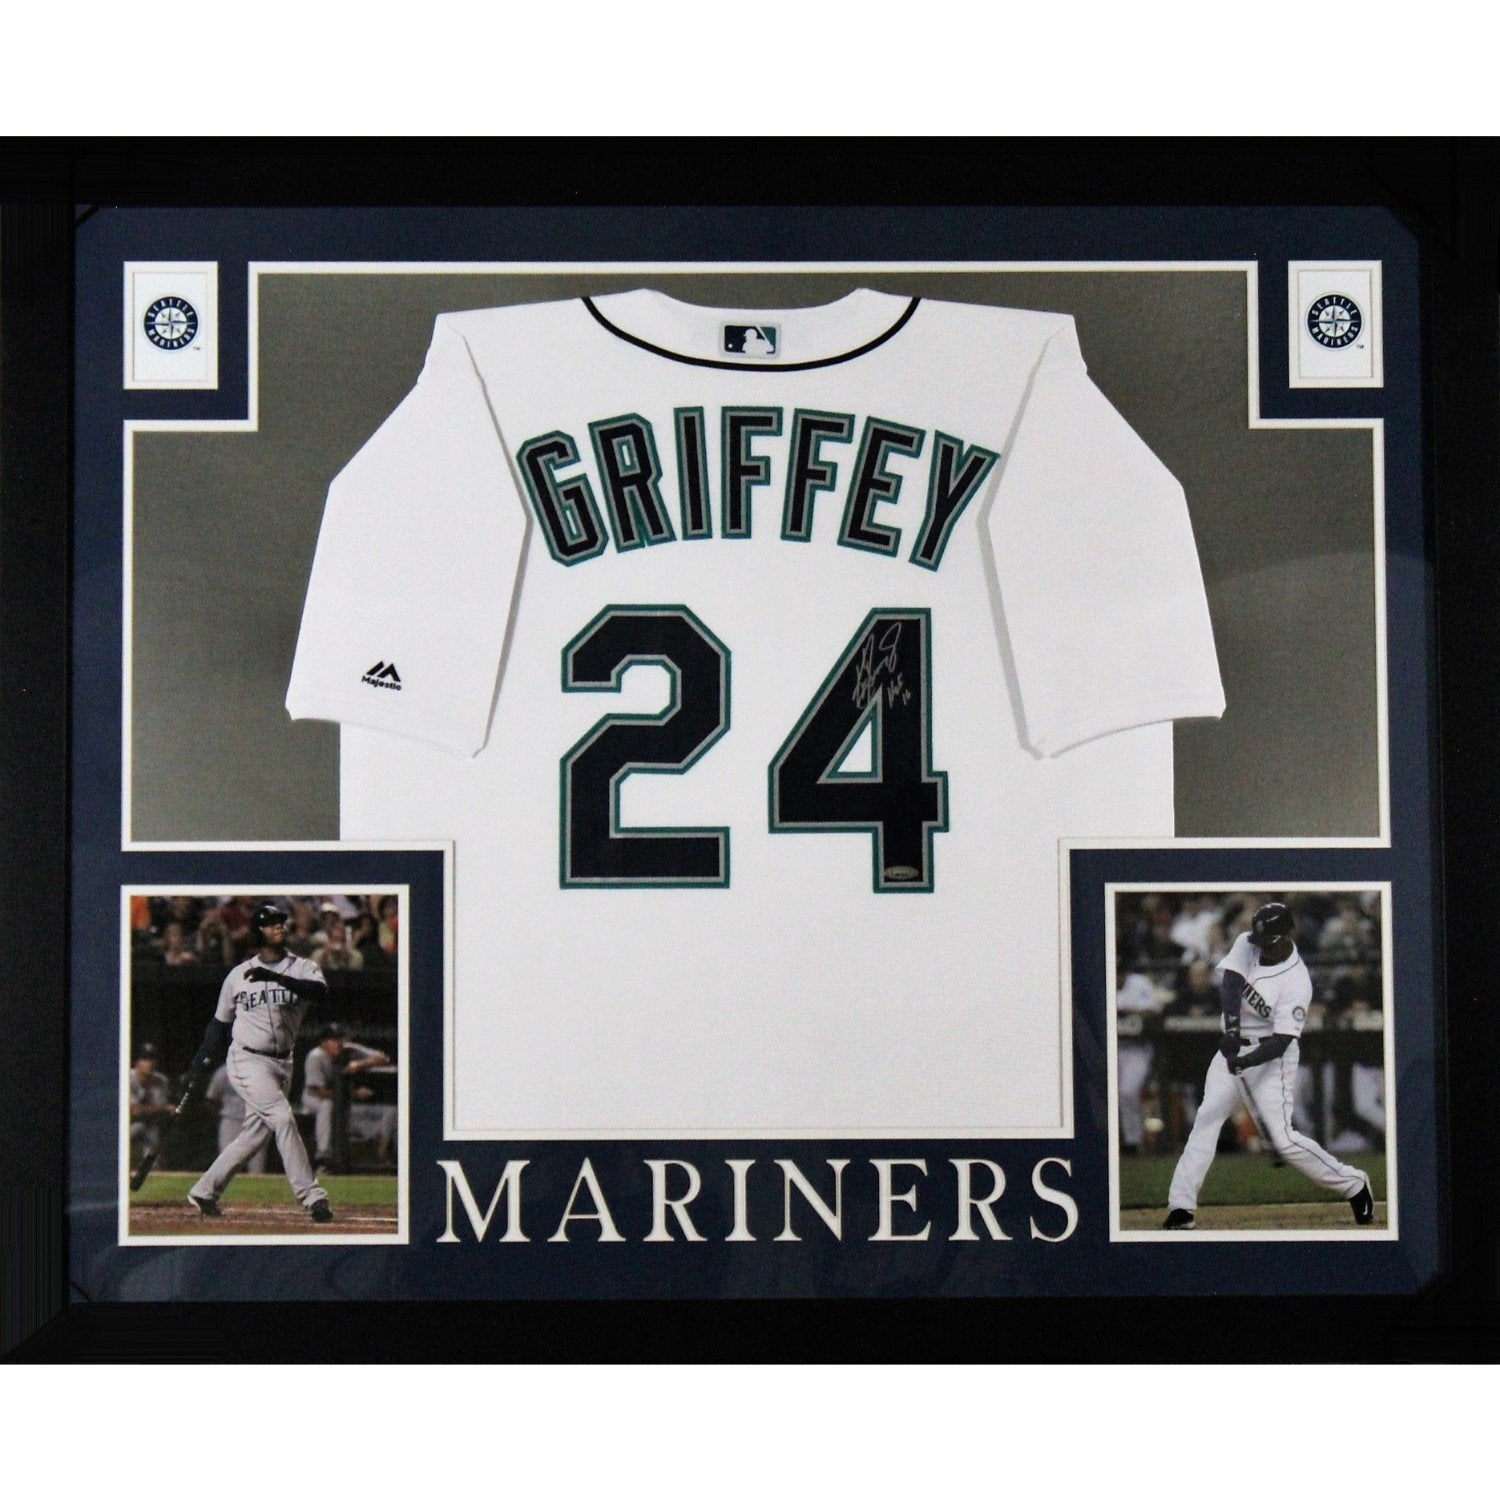 Sports Autographed Jersey Framing HOF Style (7-10 day turnaround)-Powers Sports Memorabilia